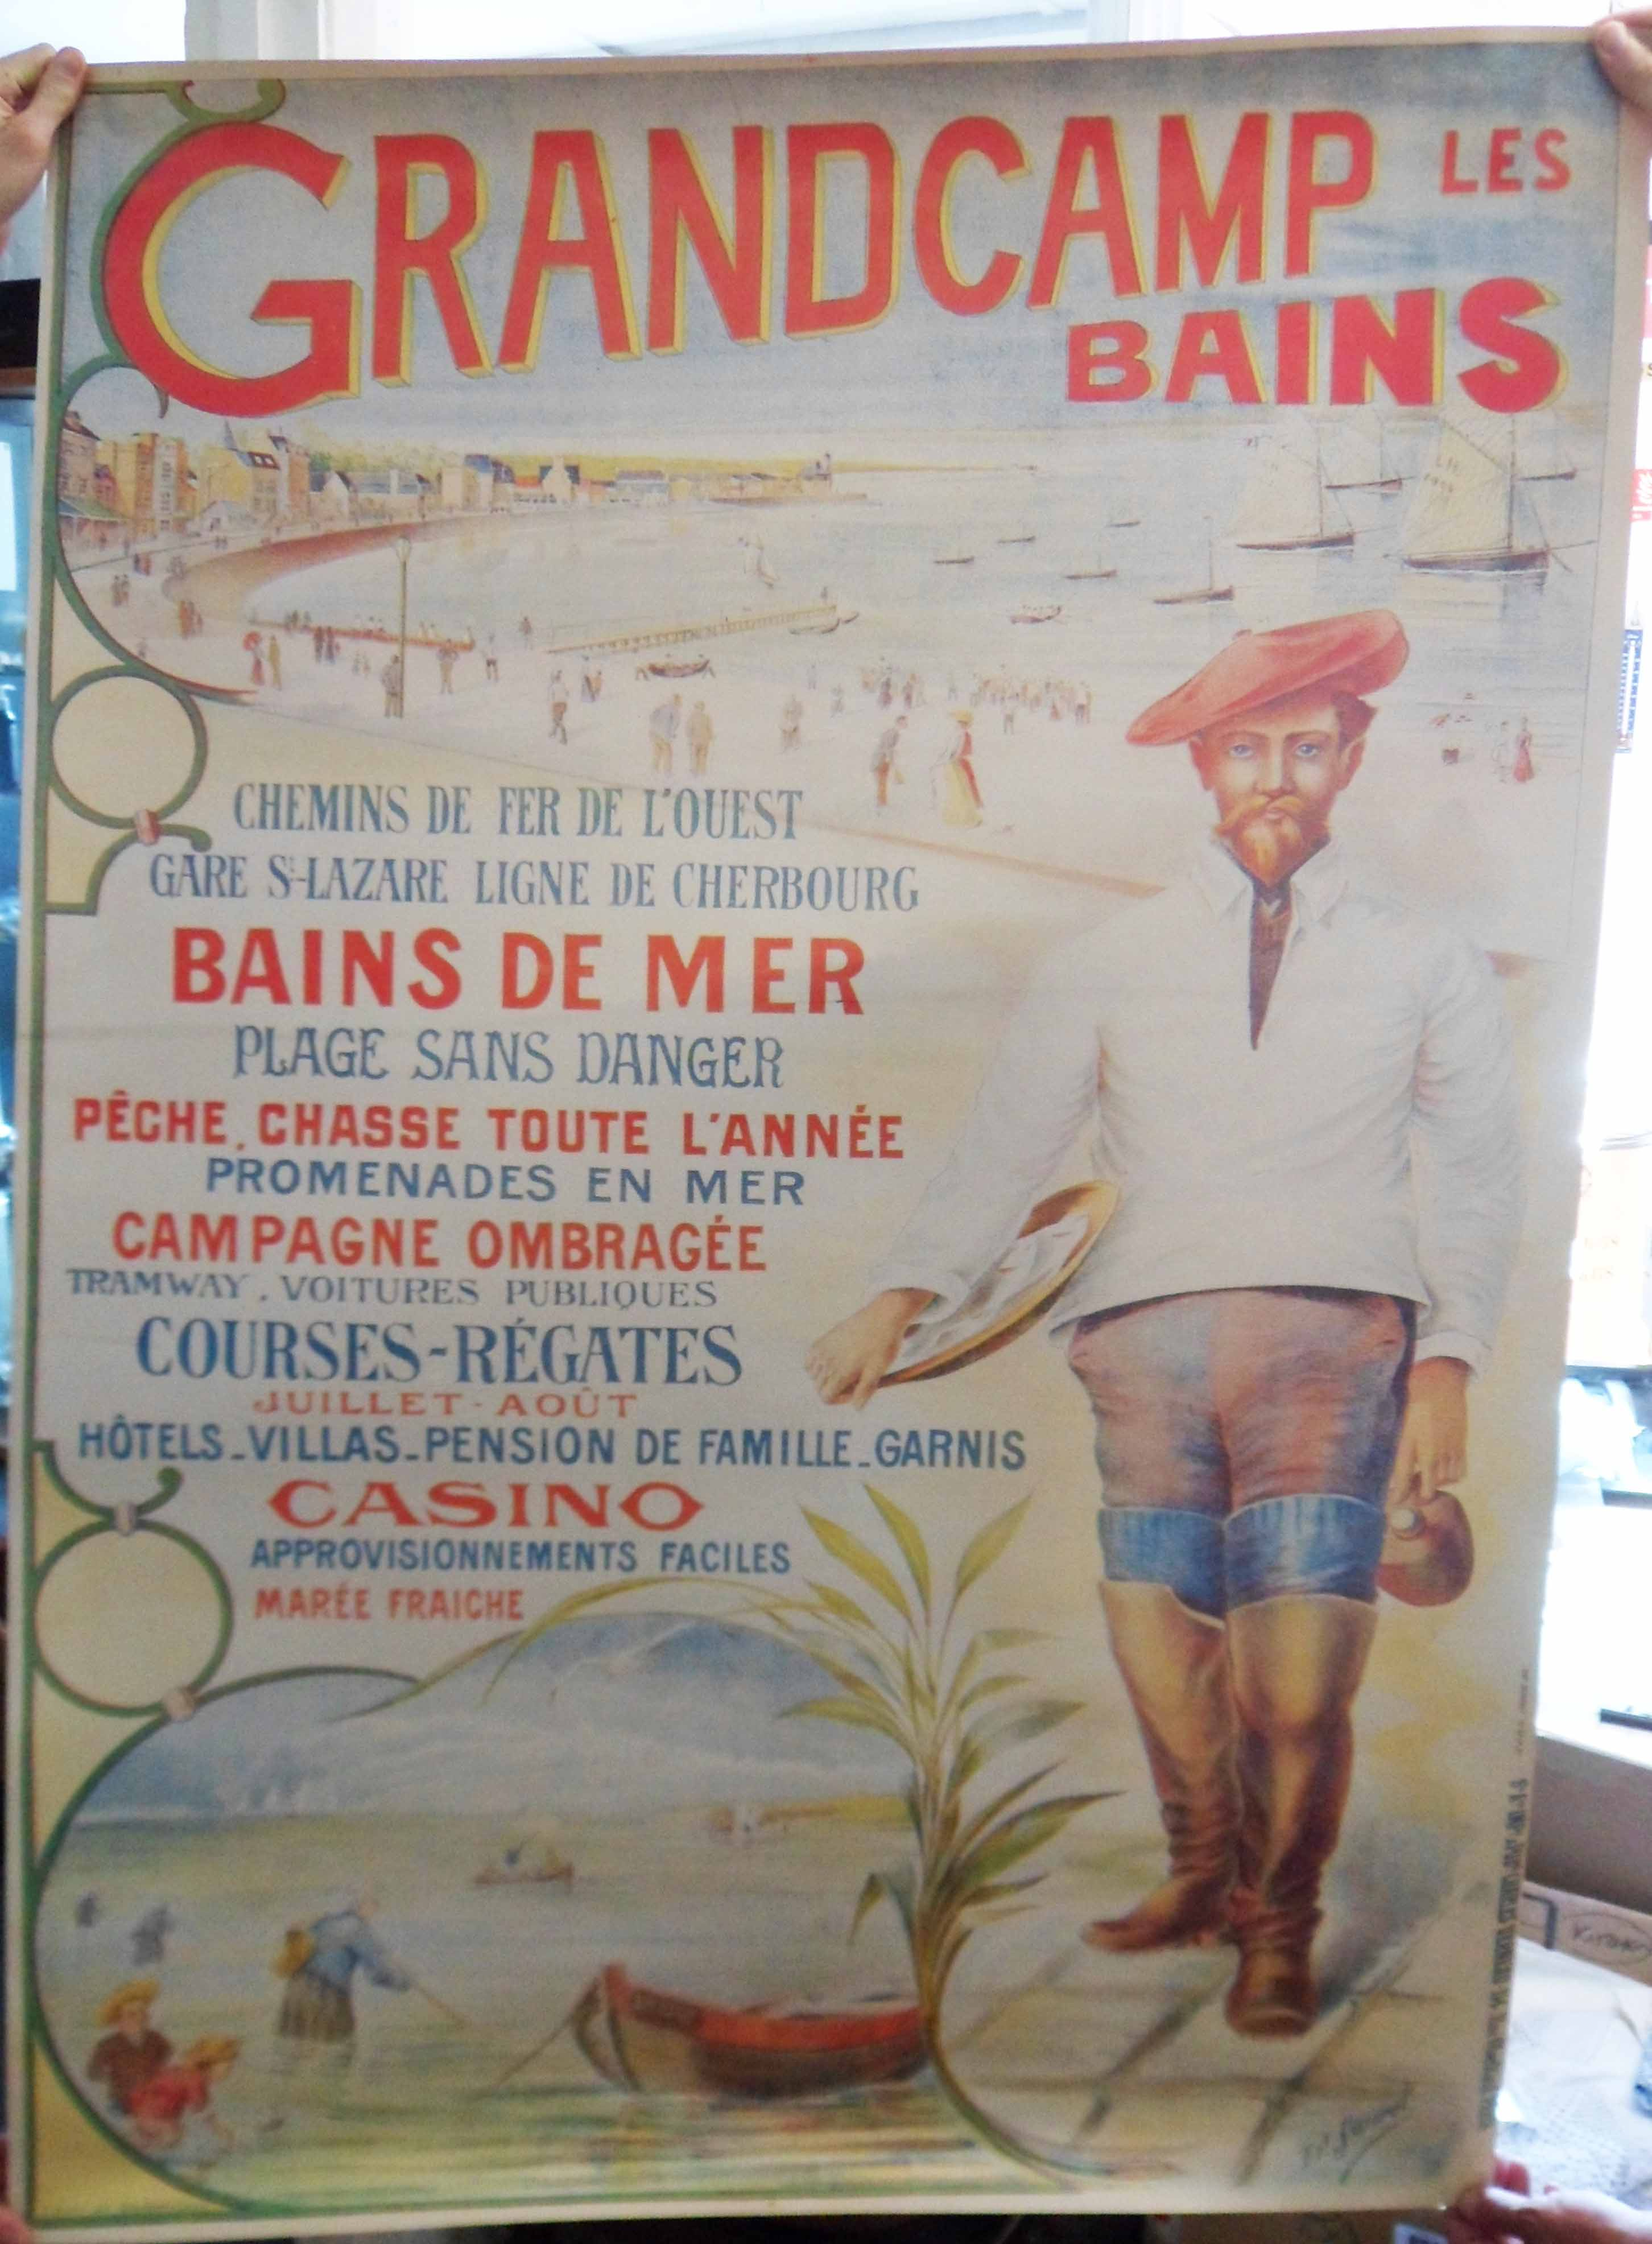 A large reproduction advertising poster on linen paper for Grandcamp les Bains